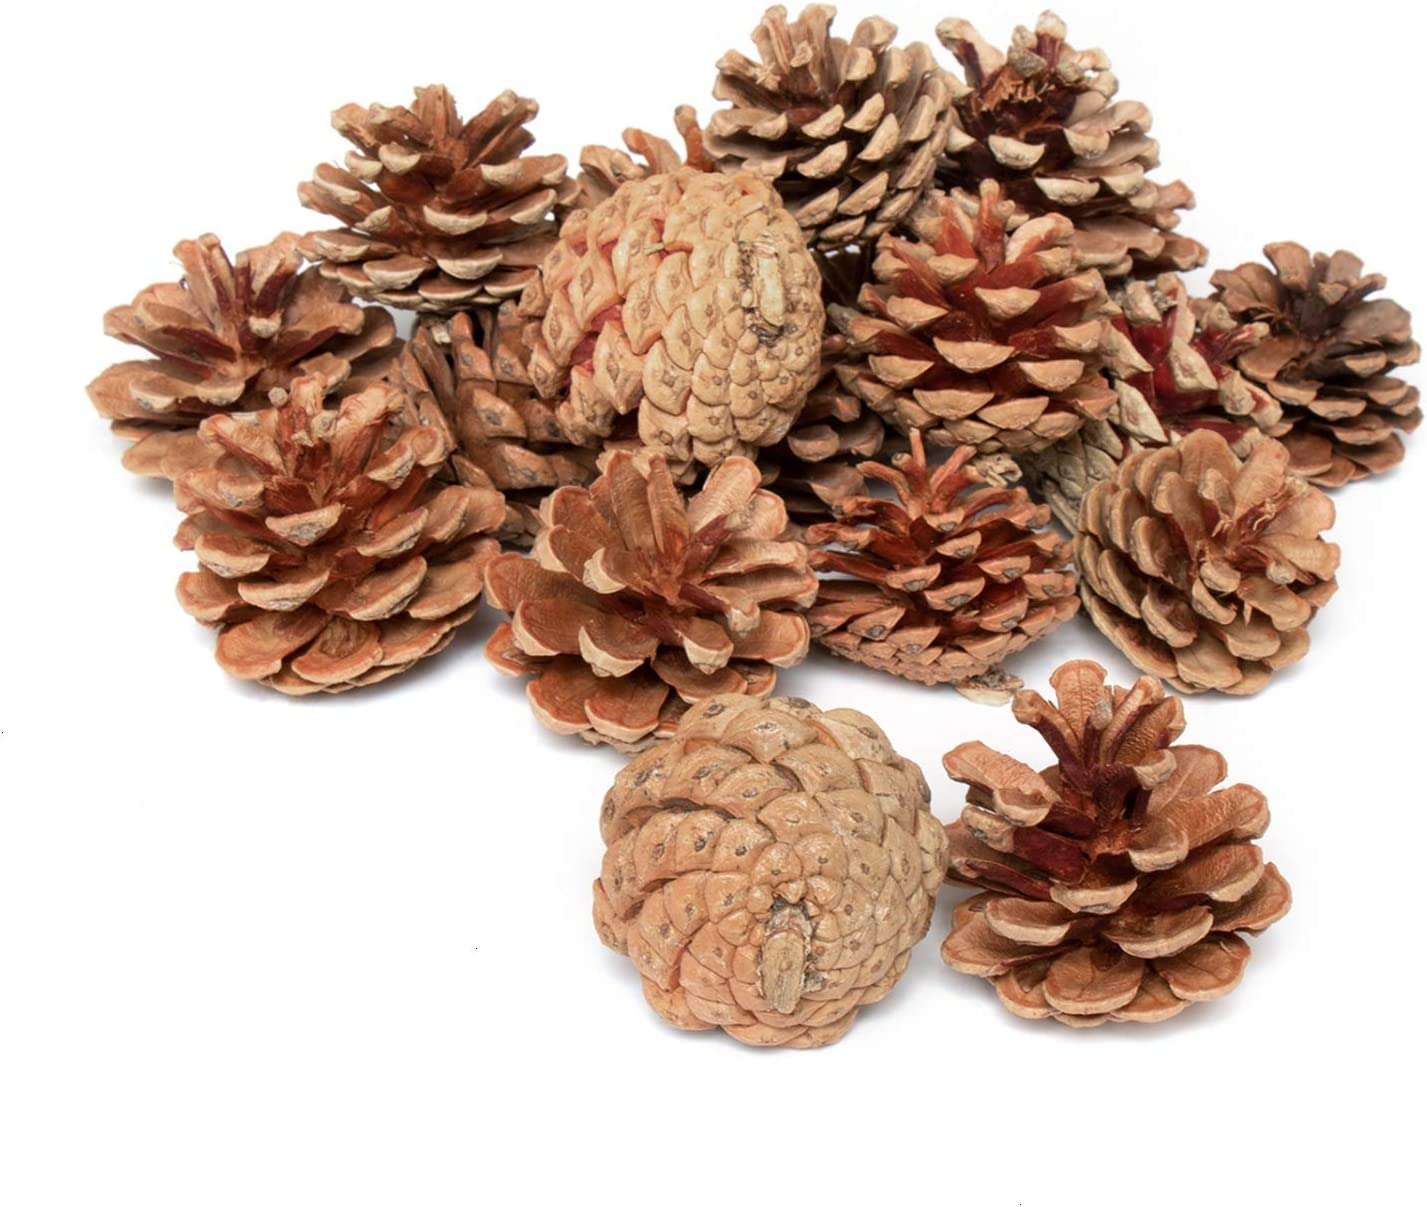 Rocinha Natural Pine Cones, 20pcs Pine Cones in Bulk, Fall Decor for Home Clearance,Crafts,Vase Filler, Christmas Tree Ornament.